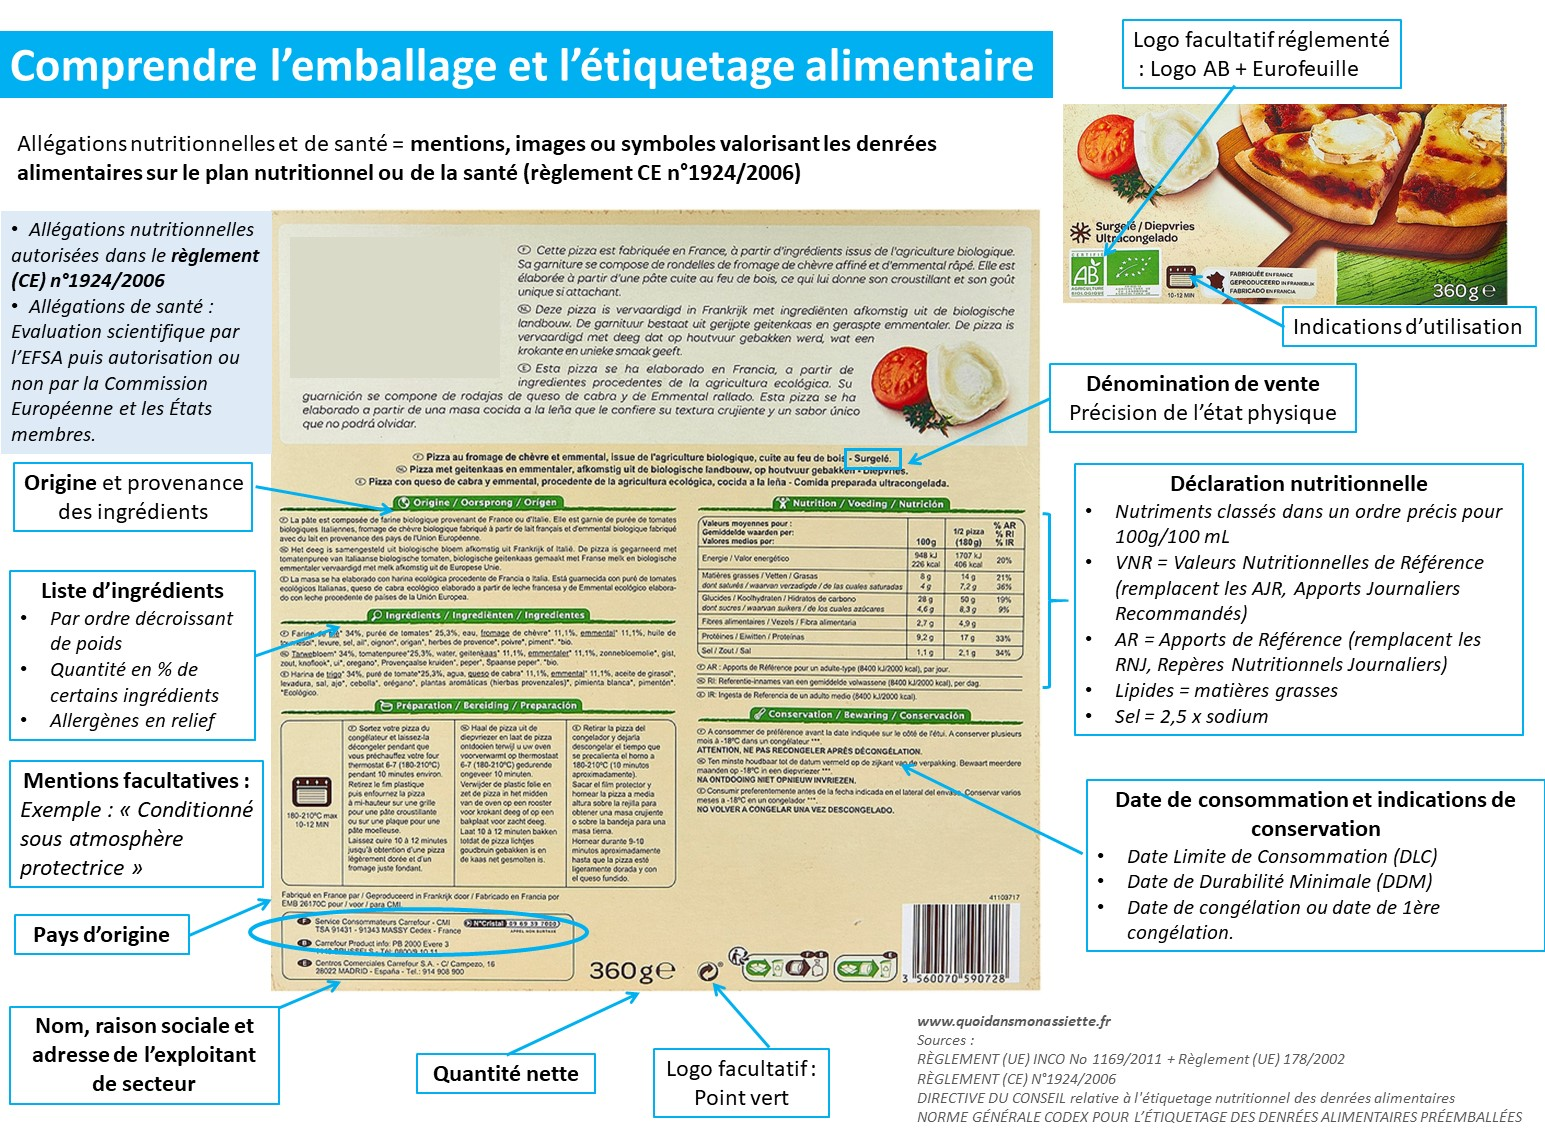 ETIQUETAGE ALIMENTAIRE DOWNLOAD